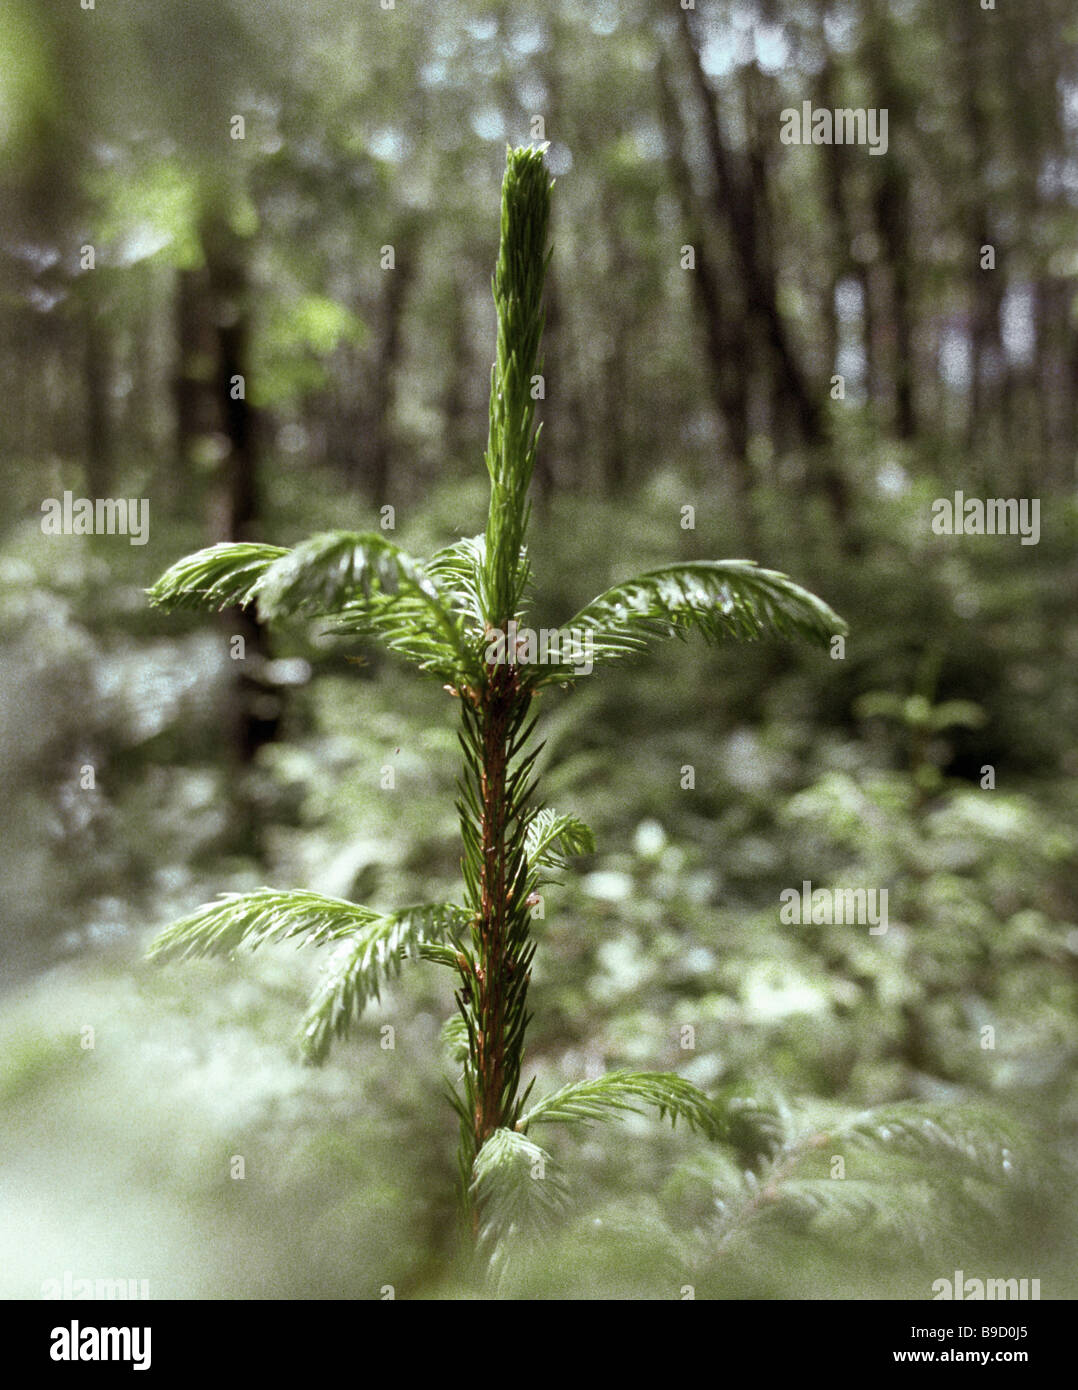 A young fir tree in the Borisovo forest preserve - Stock Image